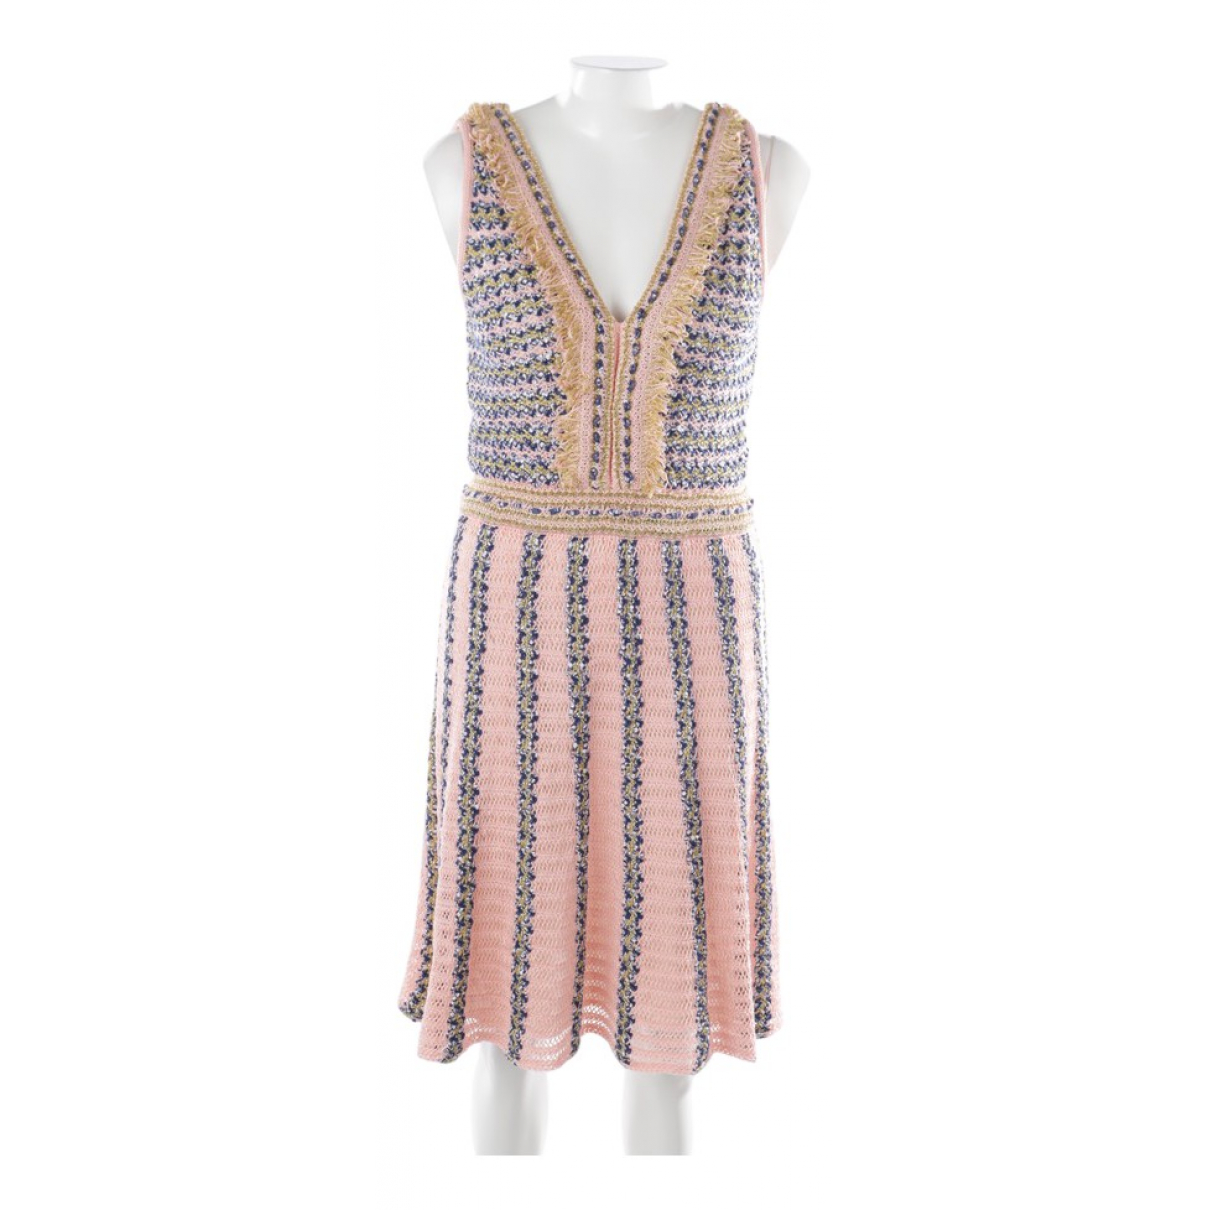 M Missoni \N Pink Cotton dress for Women 40 FR